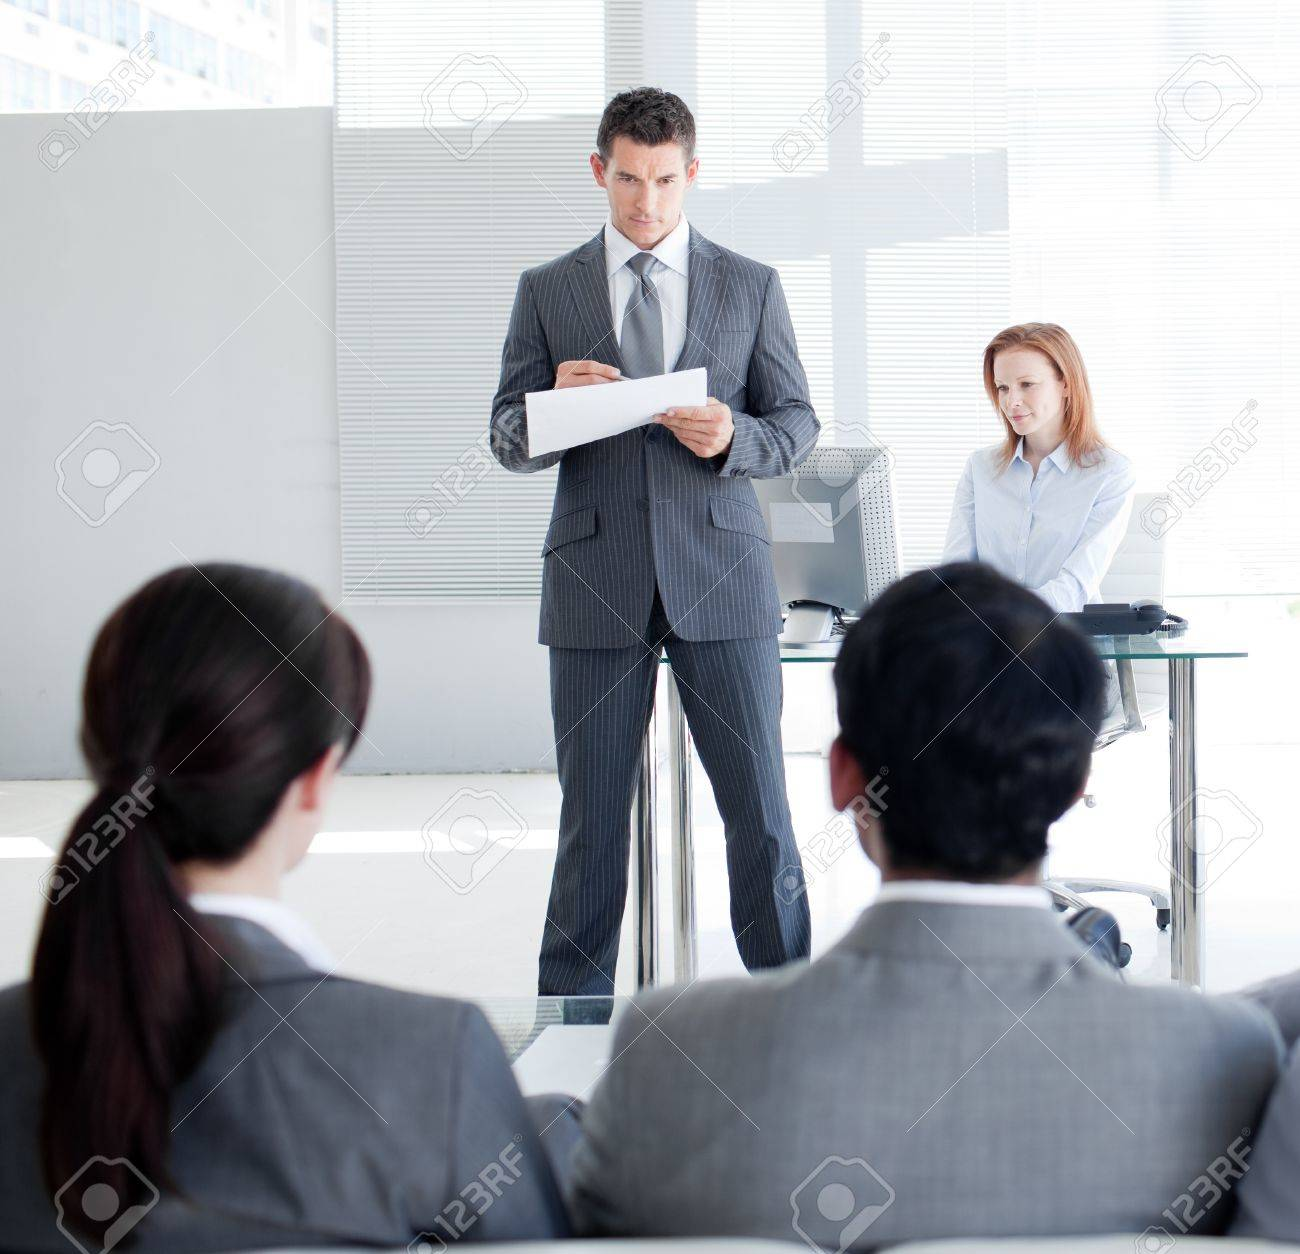 An attractive teamleader talking to his colleagues Stock Photo - 10077123